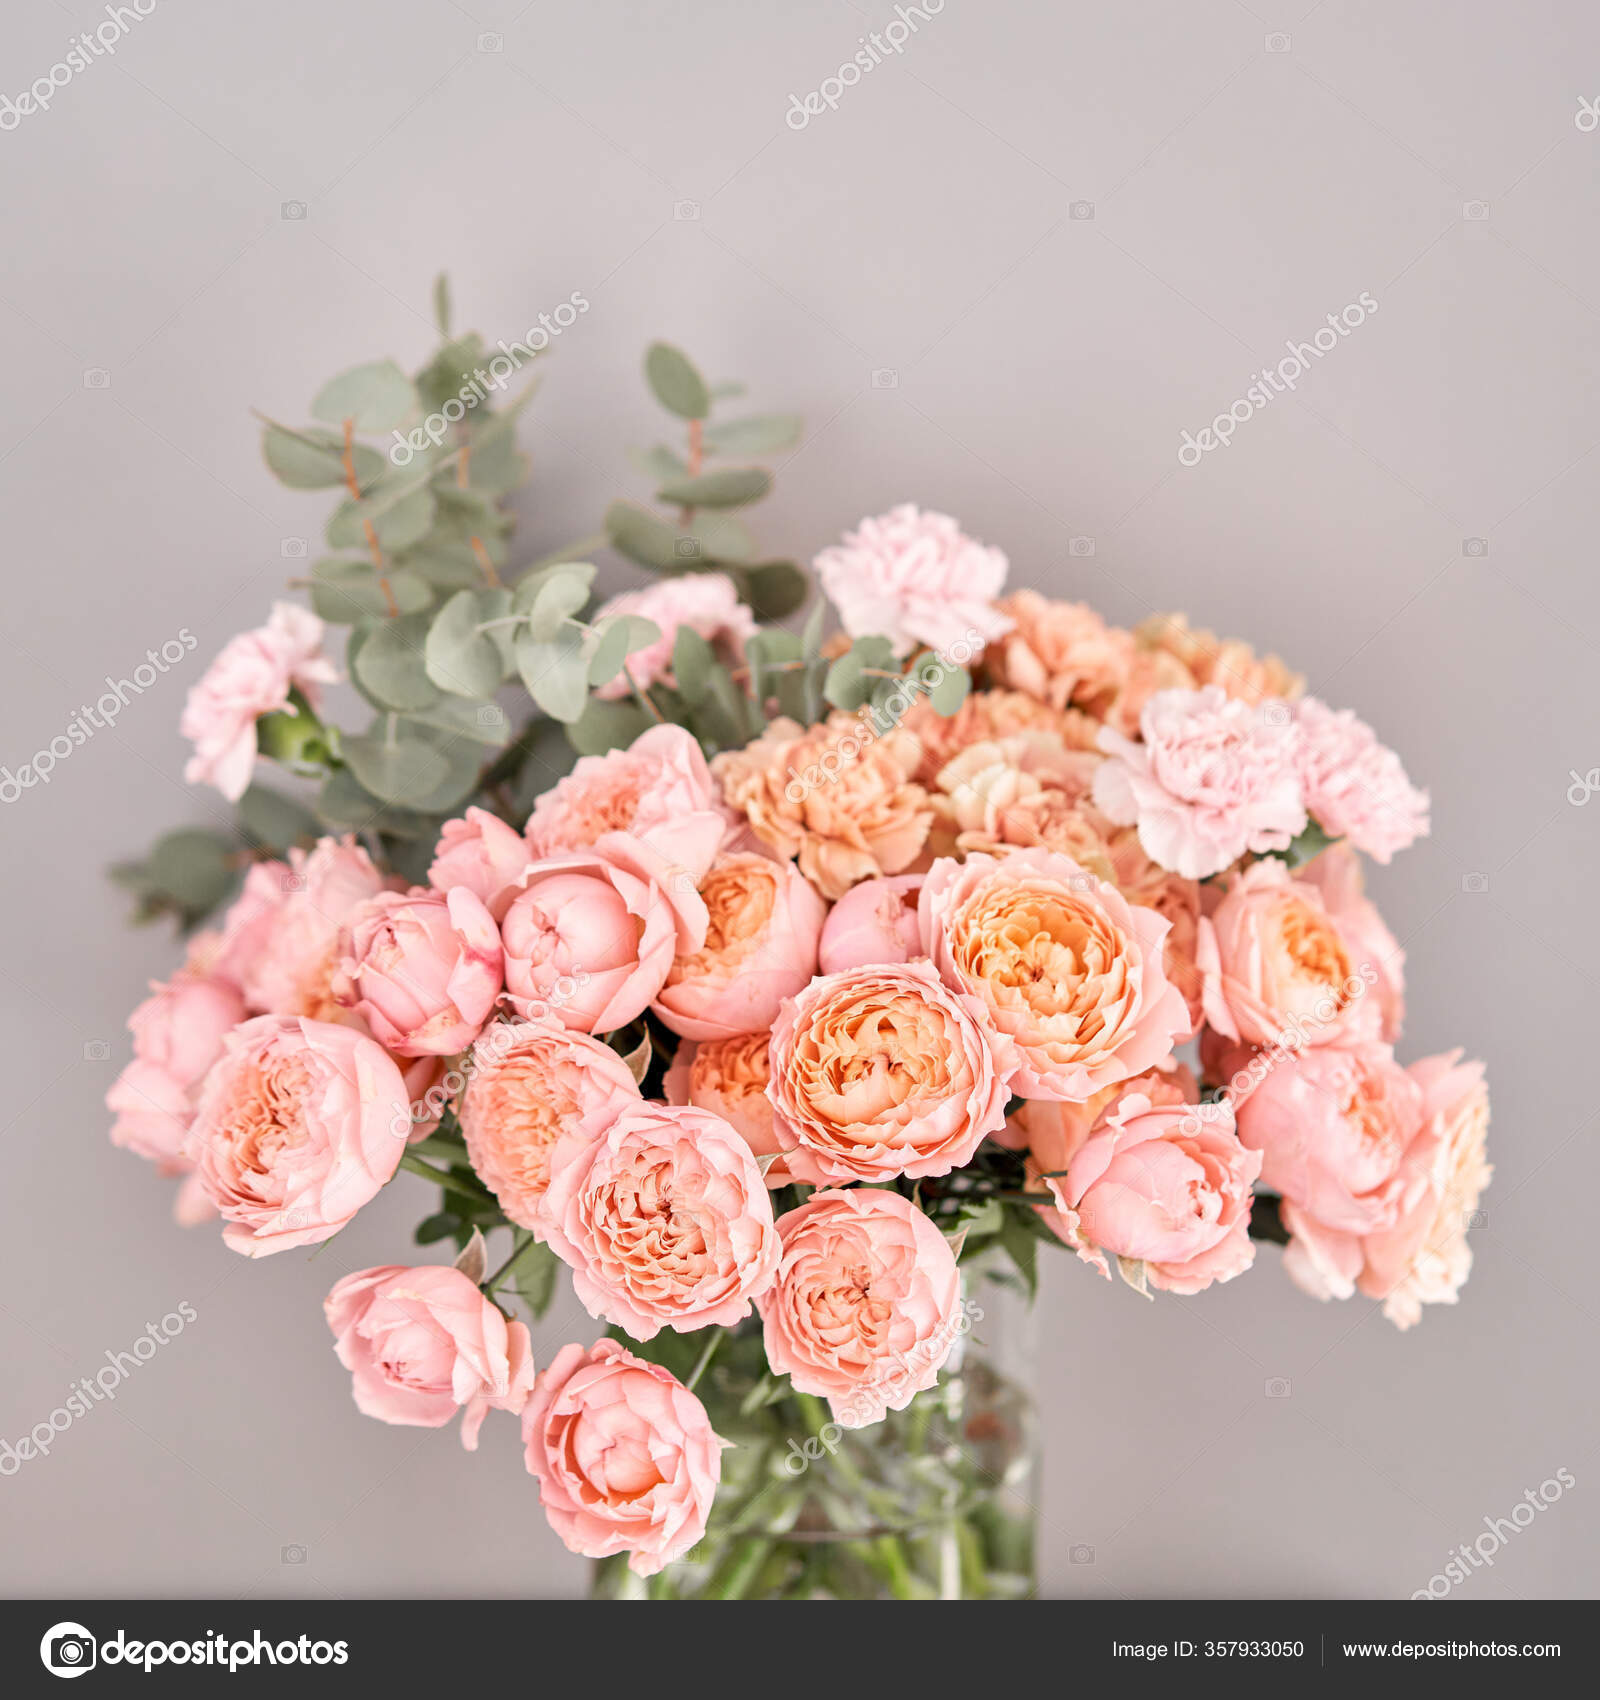 Flowers In Glass Vase On Wooden Table Fresh Cut Flowers For Decoration Home Delivery Flower Stock Photo Image By Malkovkosta 357933050